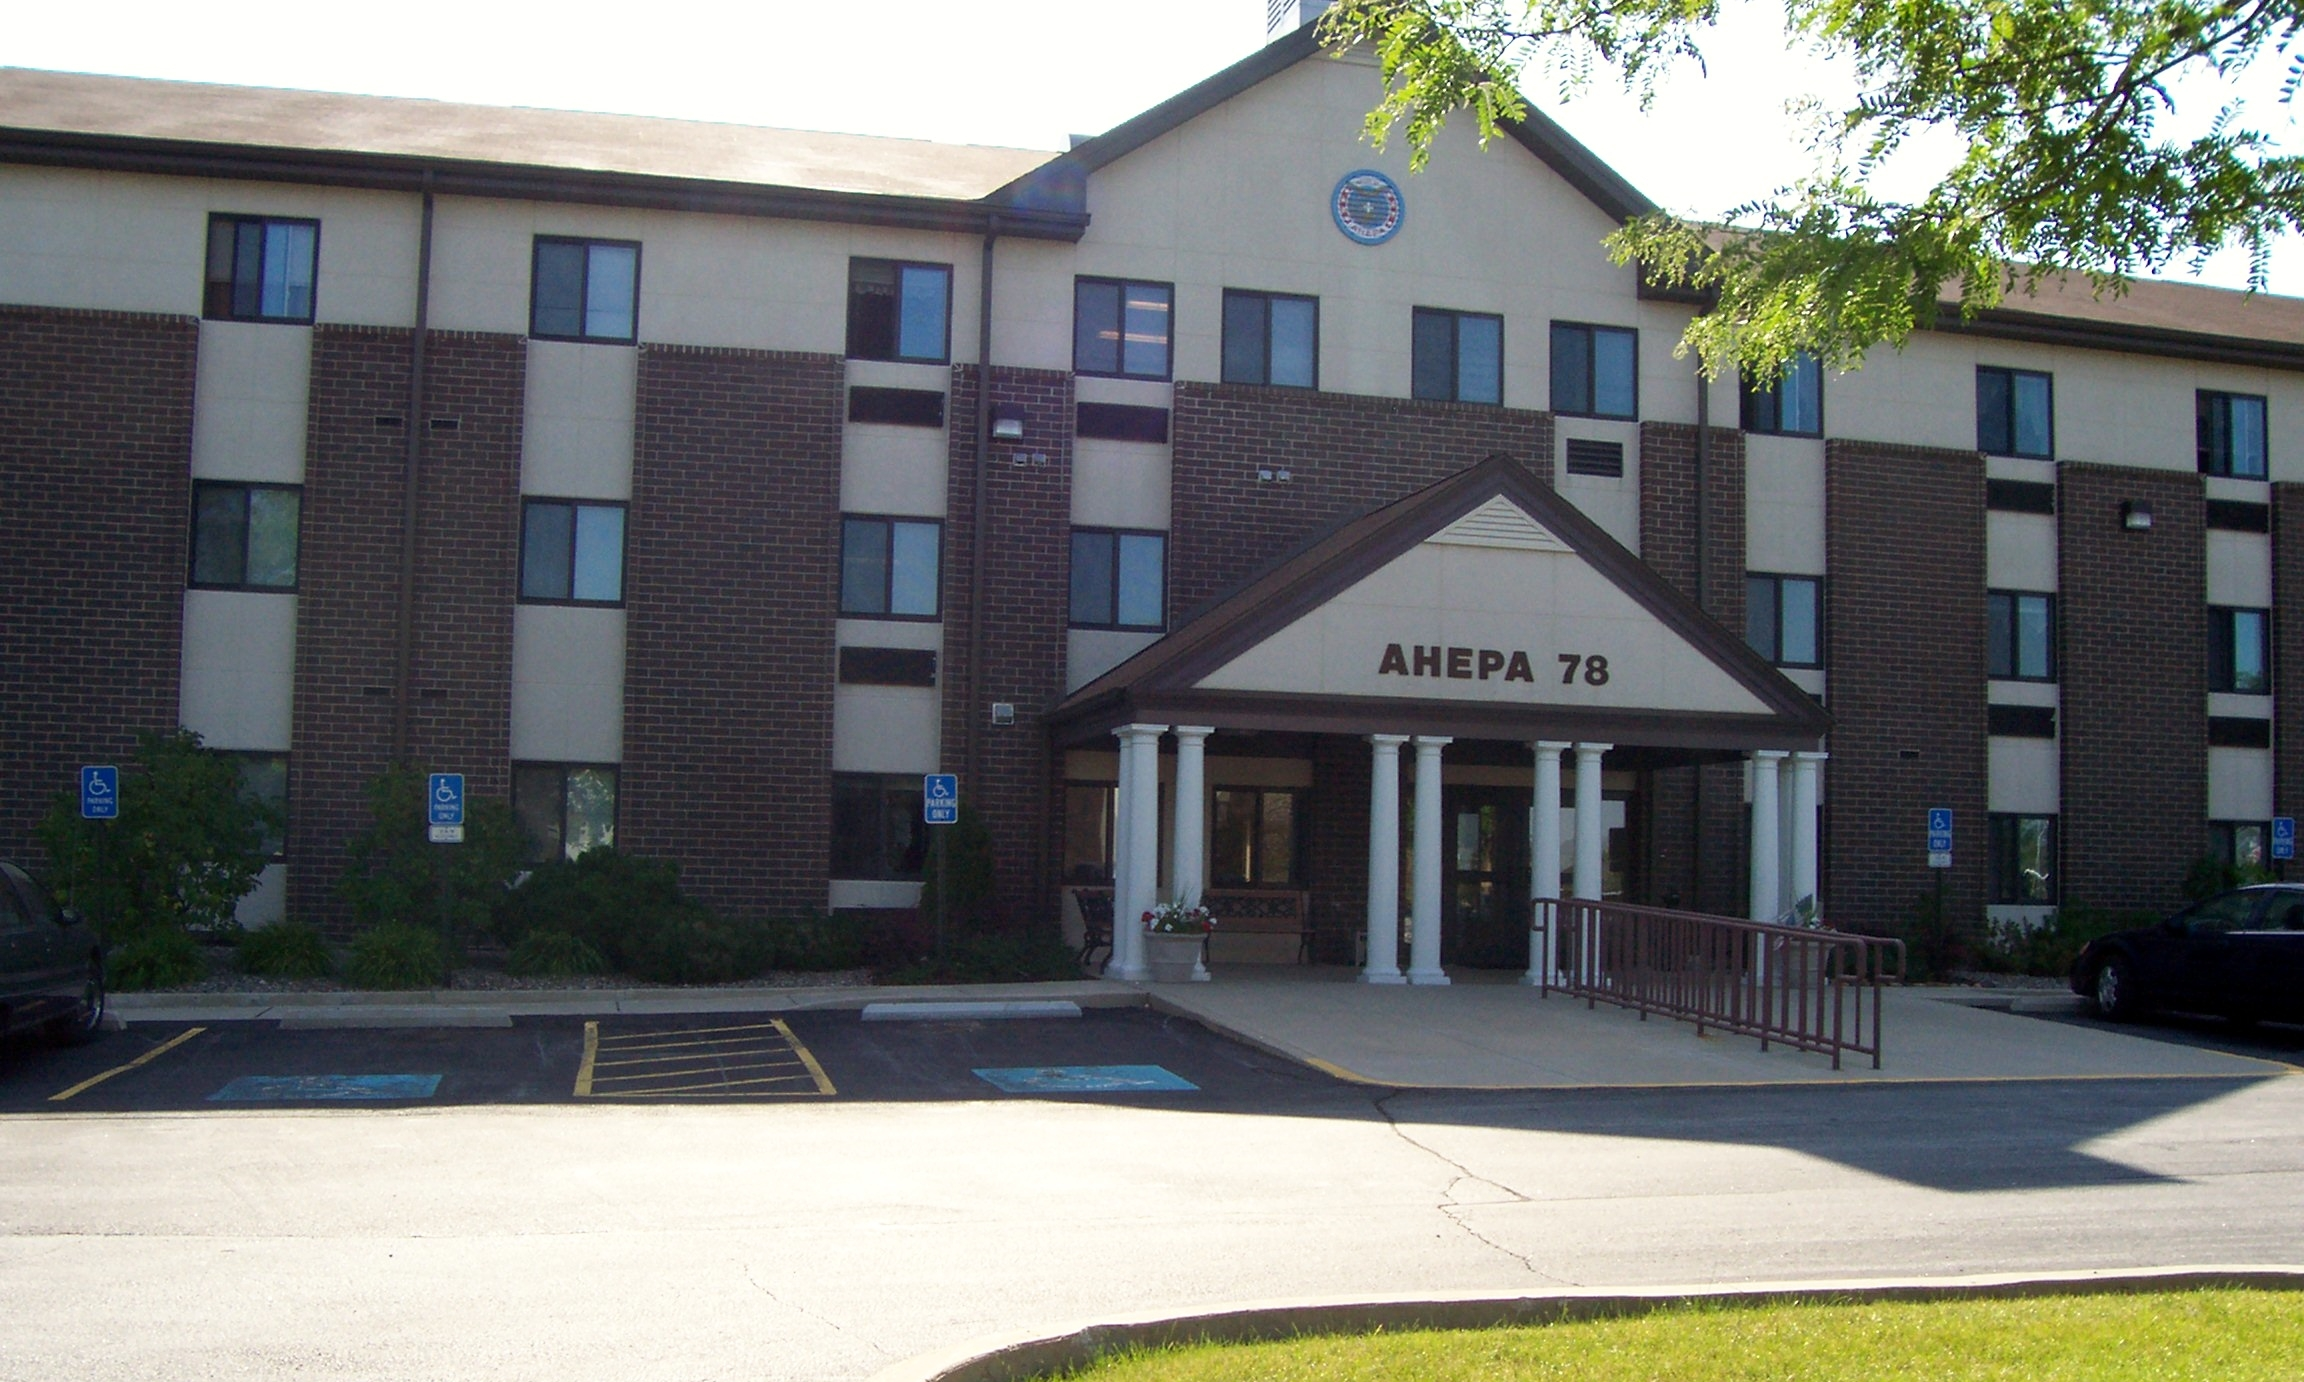 AHEPA 78 IV Senior Apartments - 1950 W. 79th PlaceMerrillville, IN 46410(219) 769-9900 TTY: (800) 325-2223 or 711 (English)TTY: (800) 743-4869 or 711 (Español)info@ahepahousing.org